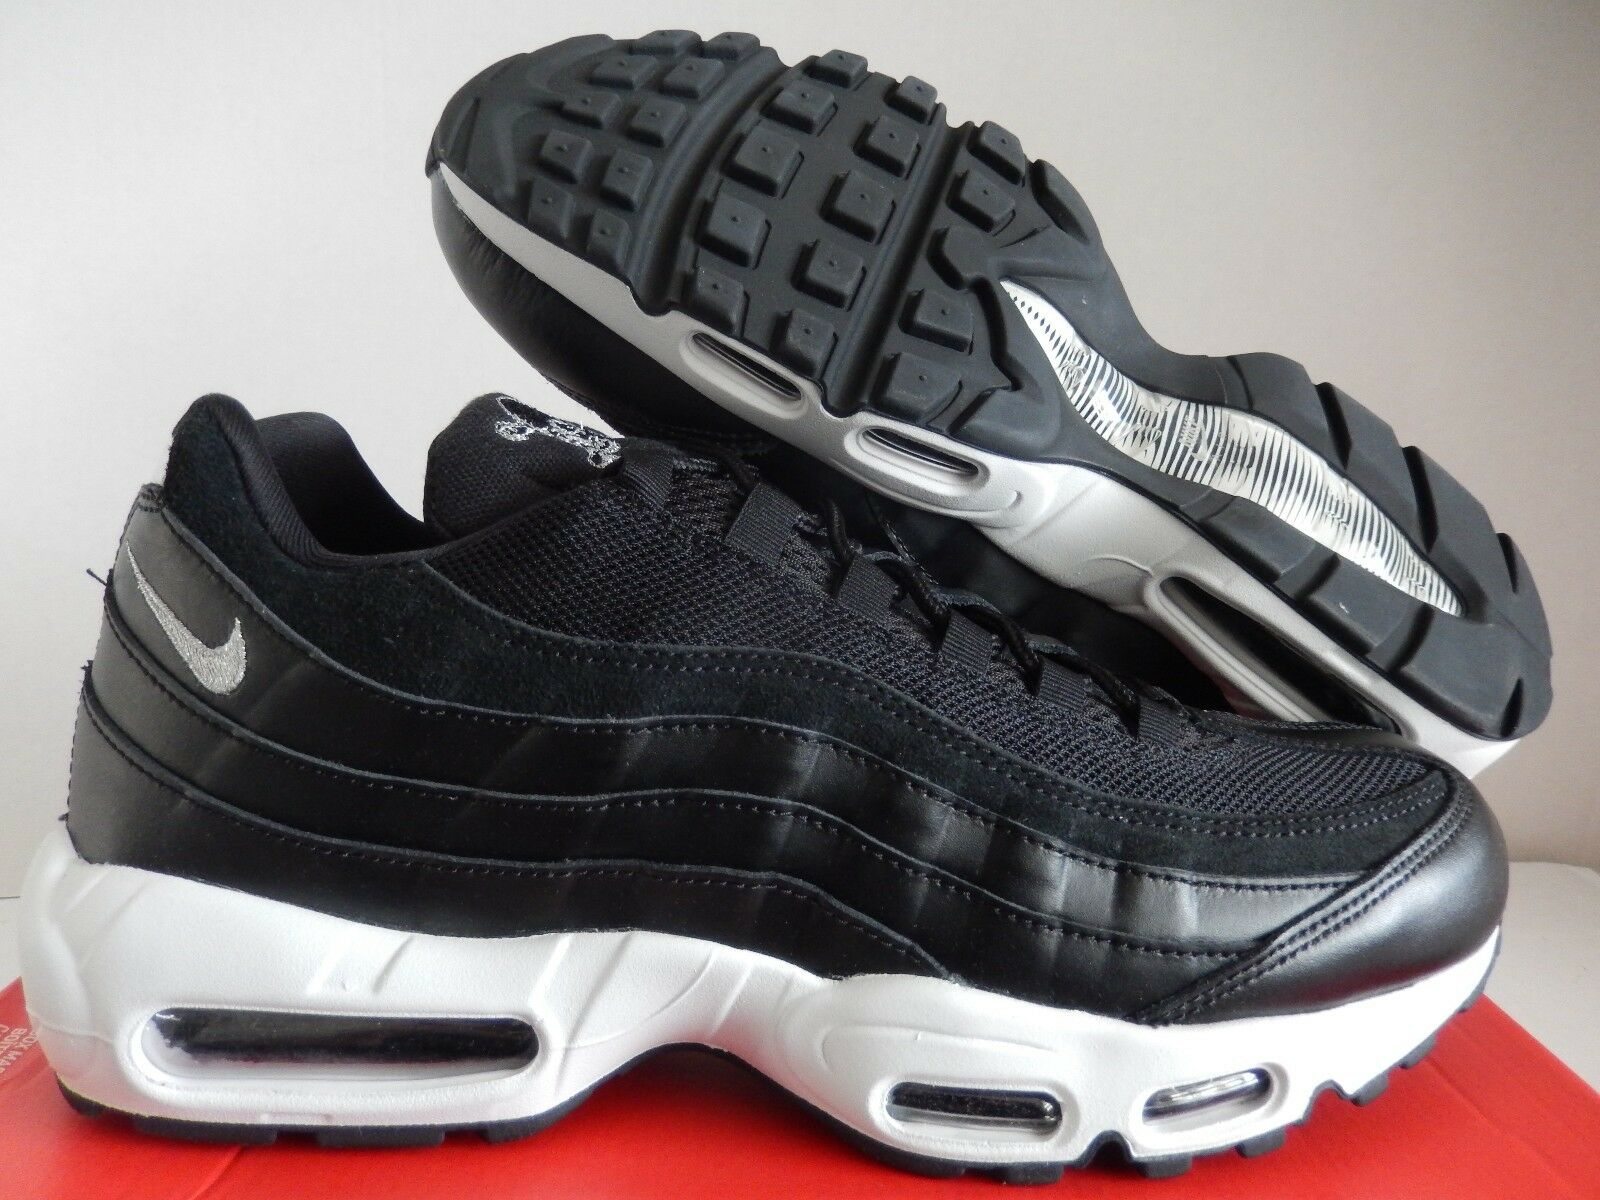 NIKE AIR MAX 95 PREMIUM PRM  REBEL SKULLS PACK  BLACK-CRM SZ 11